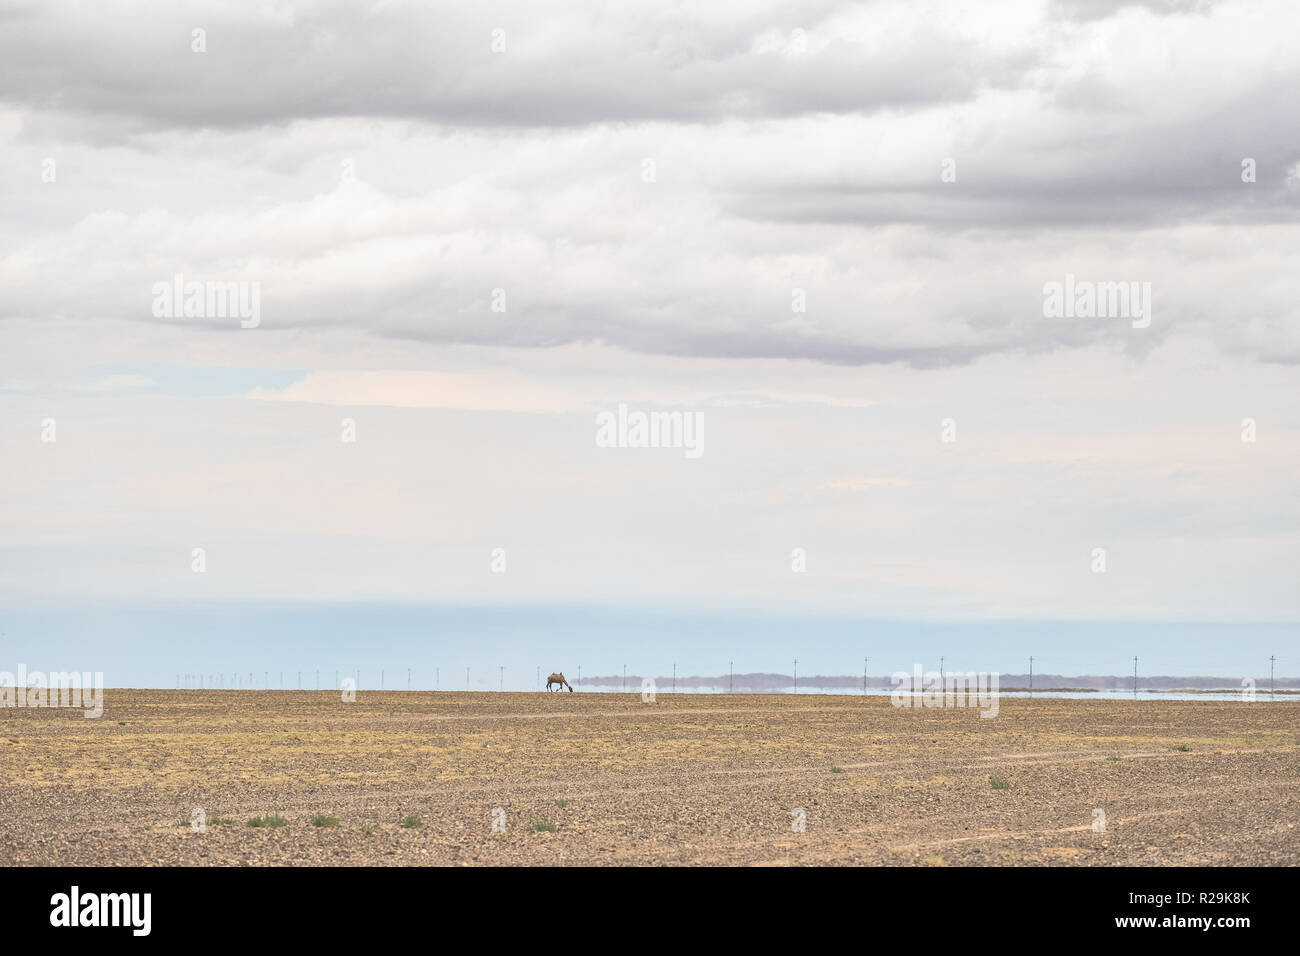 An inferior mirage on Gobi desert in summer with a solo Bactrian camel seen from a distance. - Stock Image